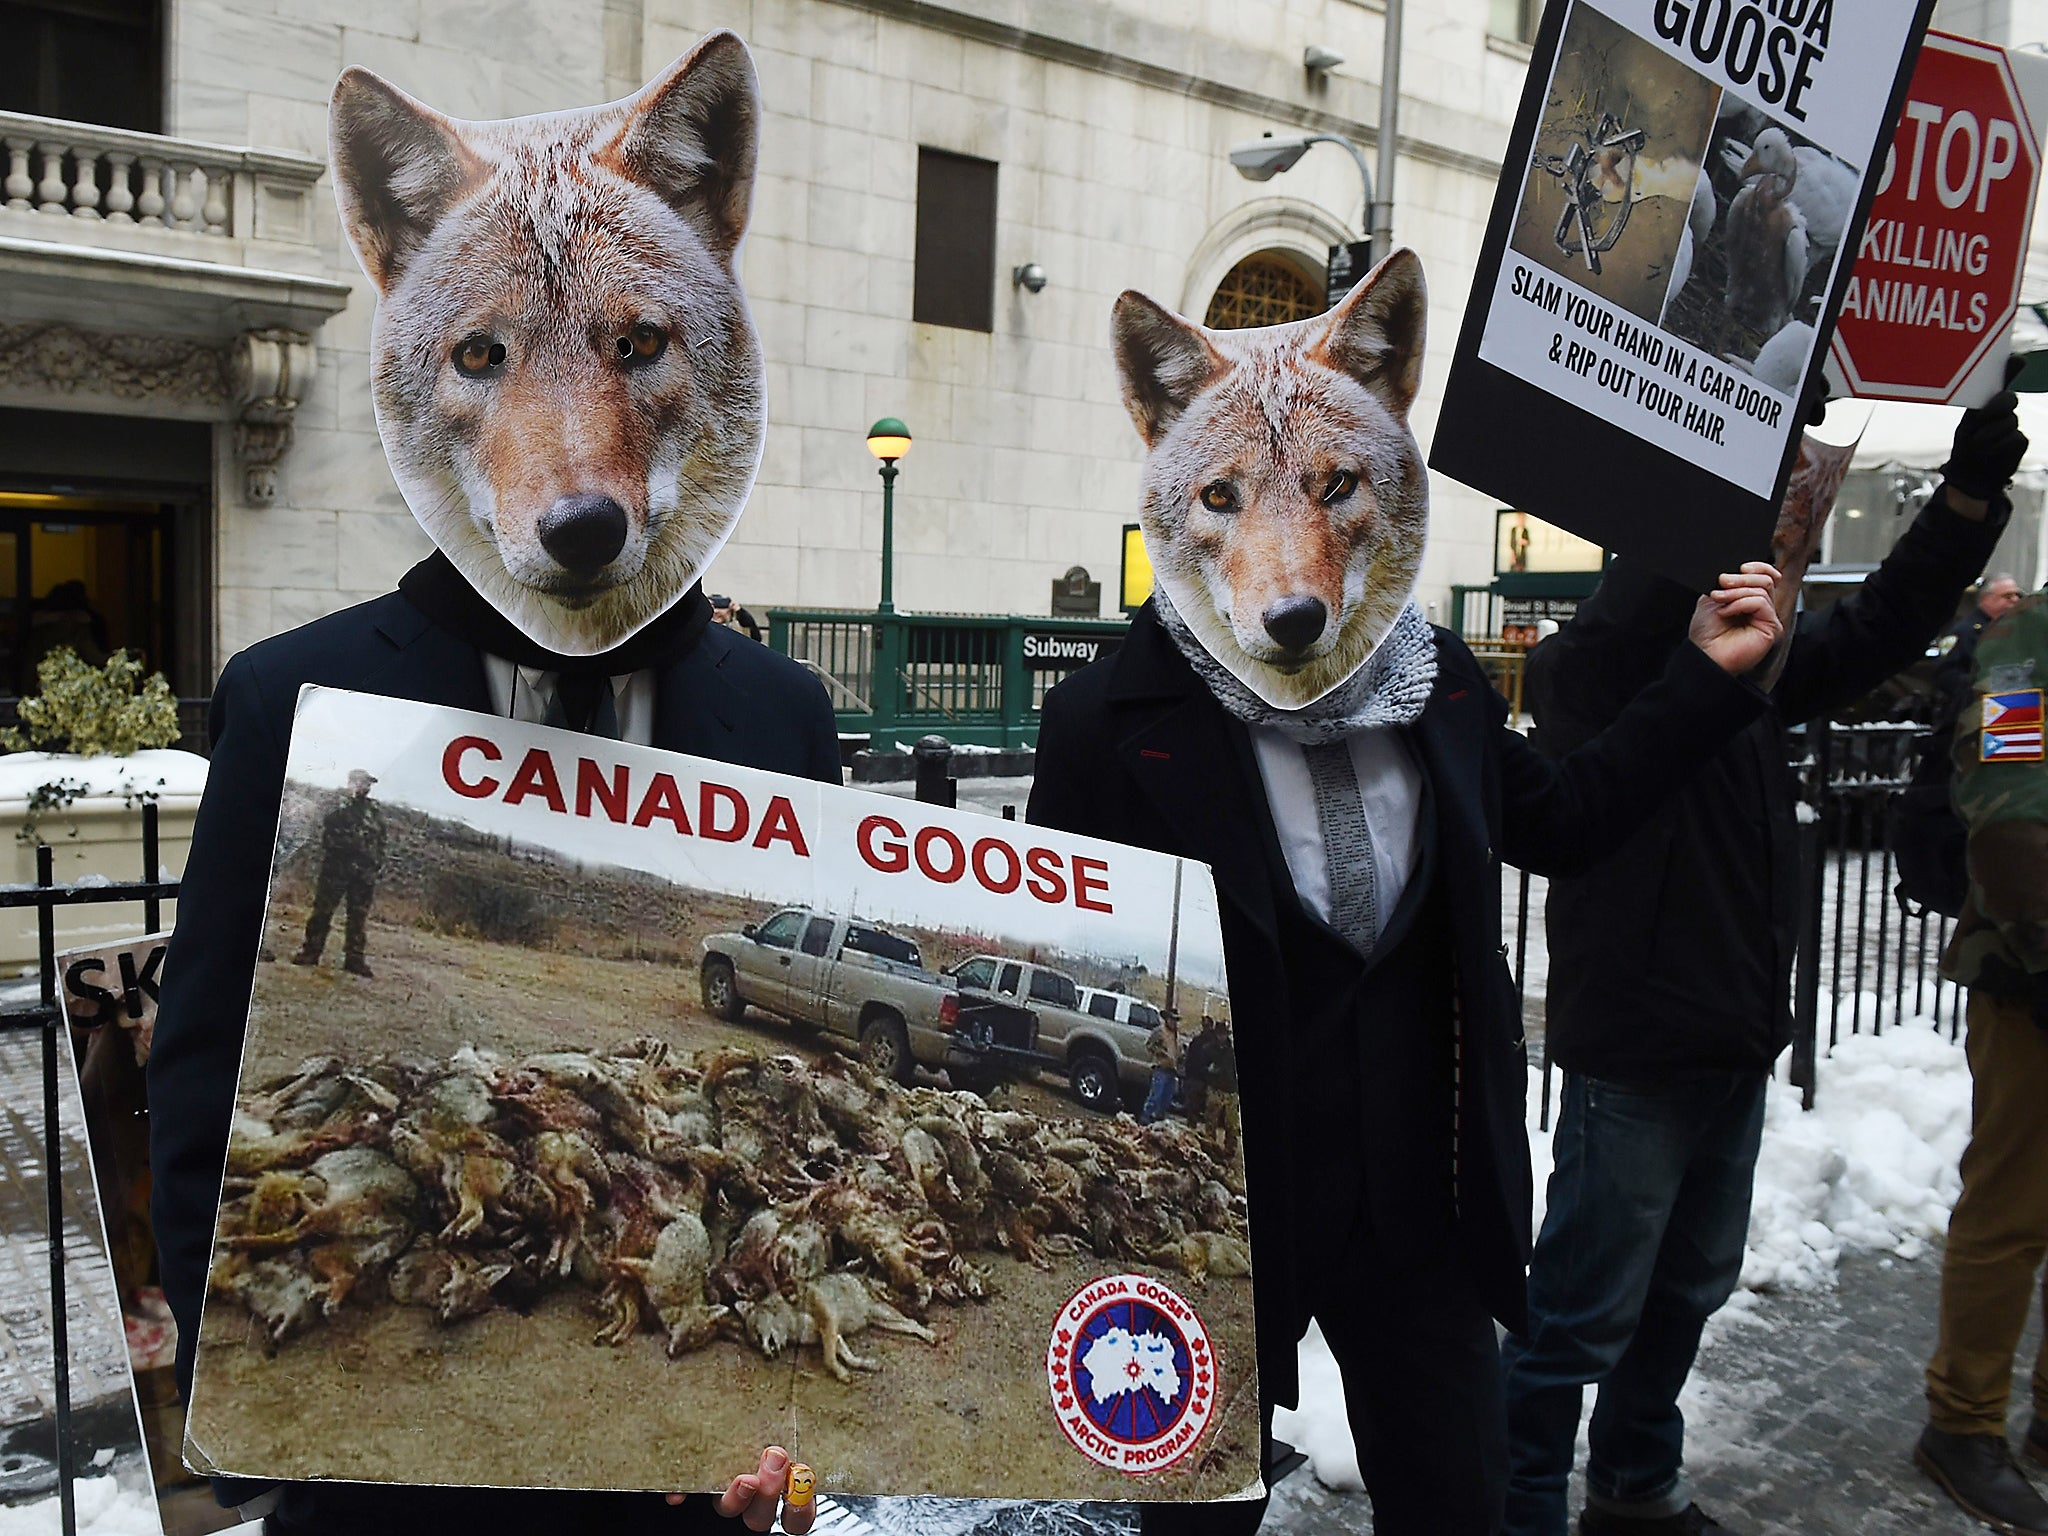 Wearing coyote masks and business suits and waving signs against Canada Goose and their use of